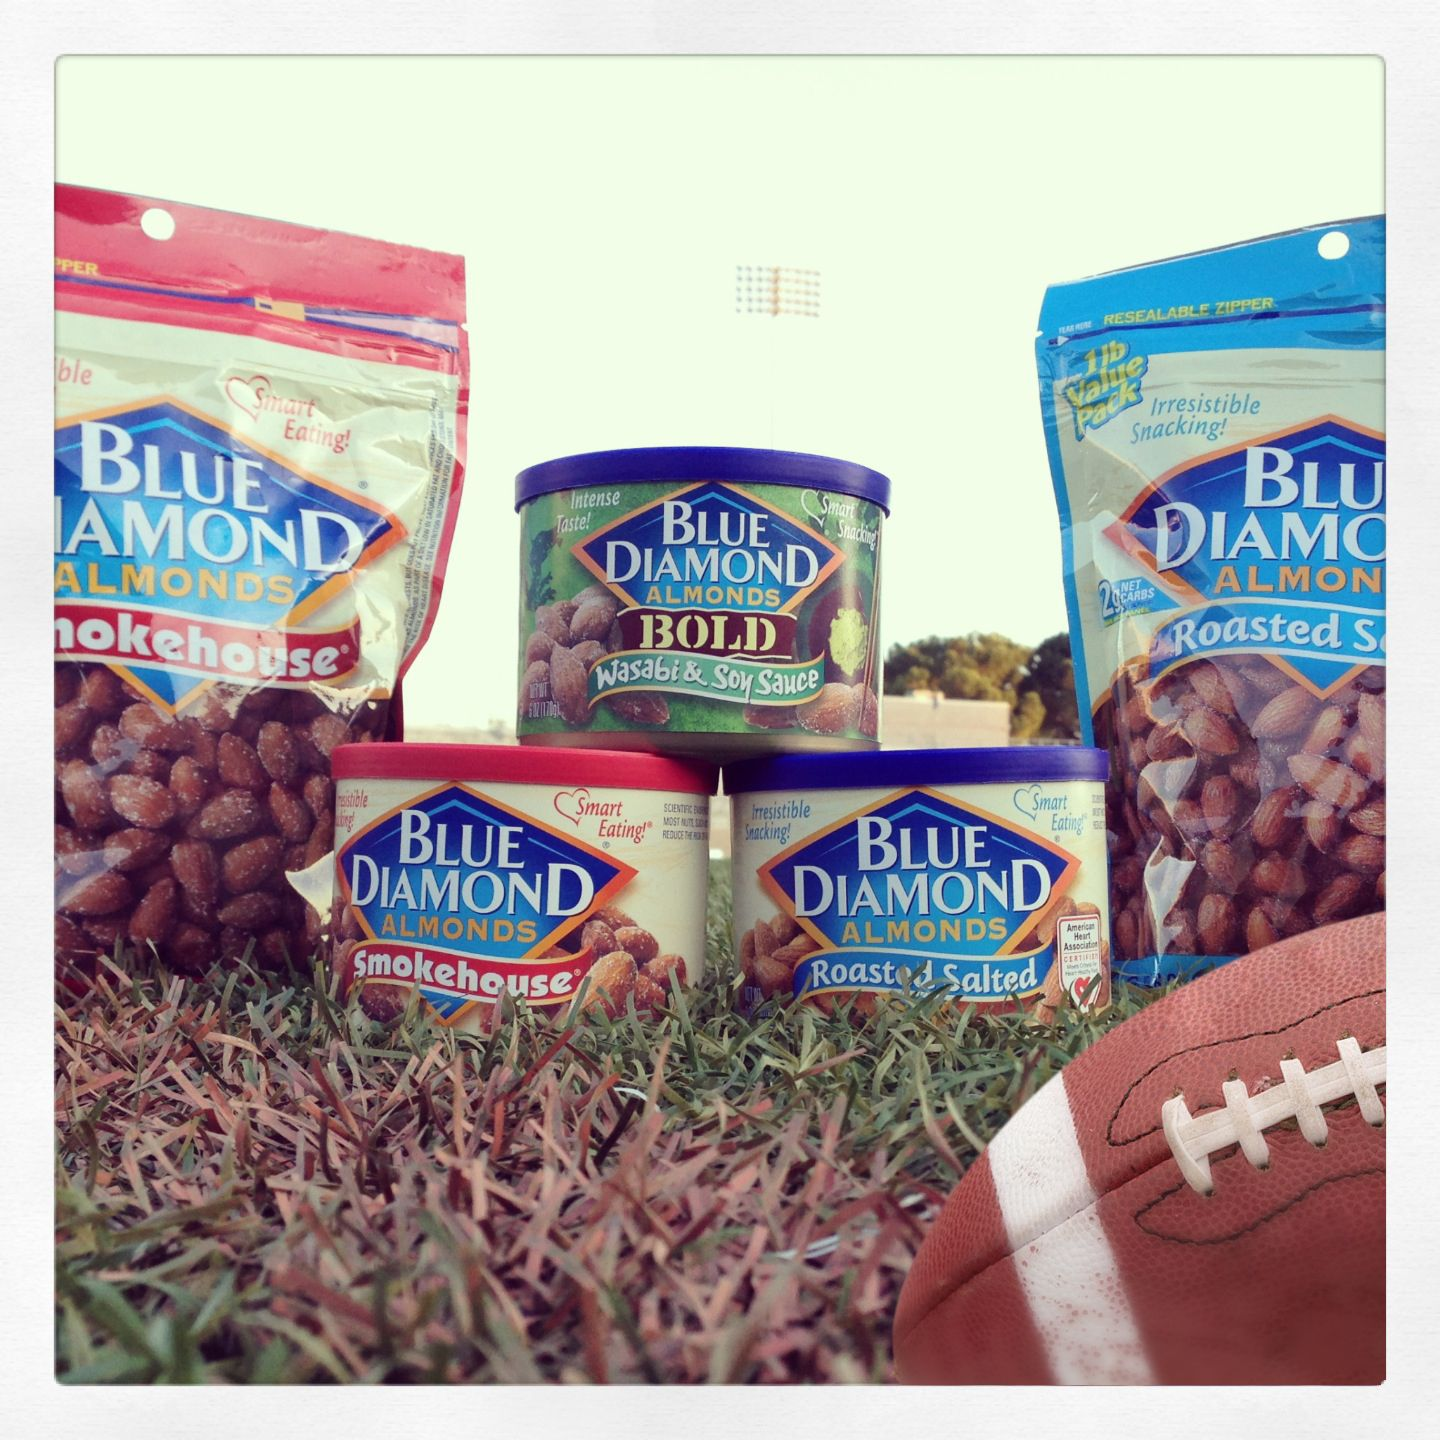 Tackle your hunger with a smart snack on Game Day! Smart